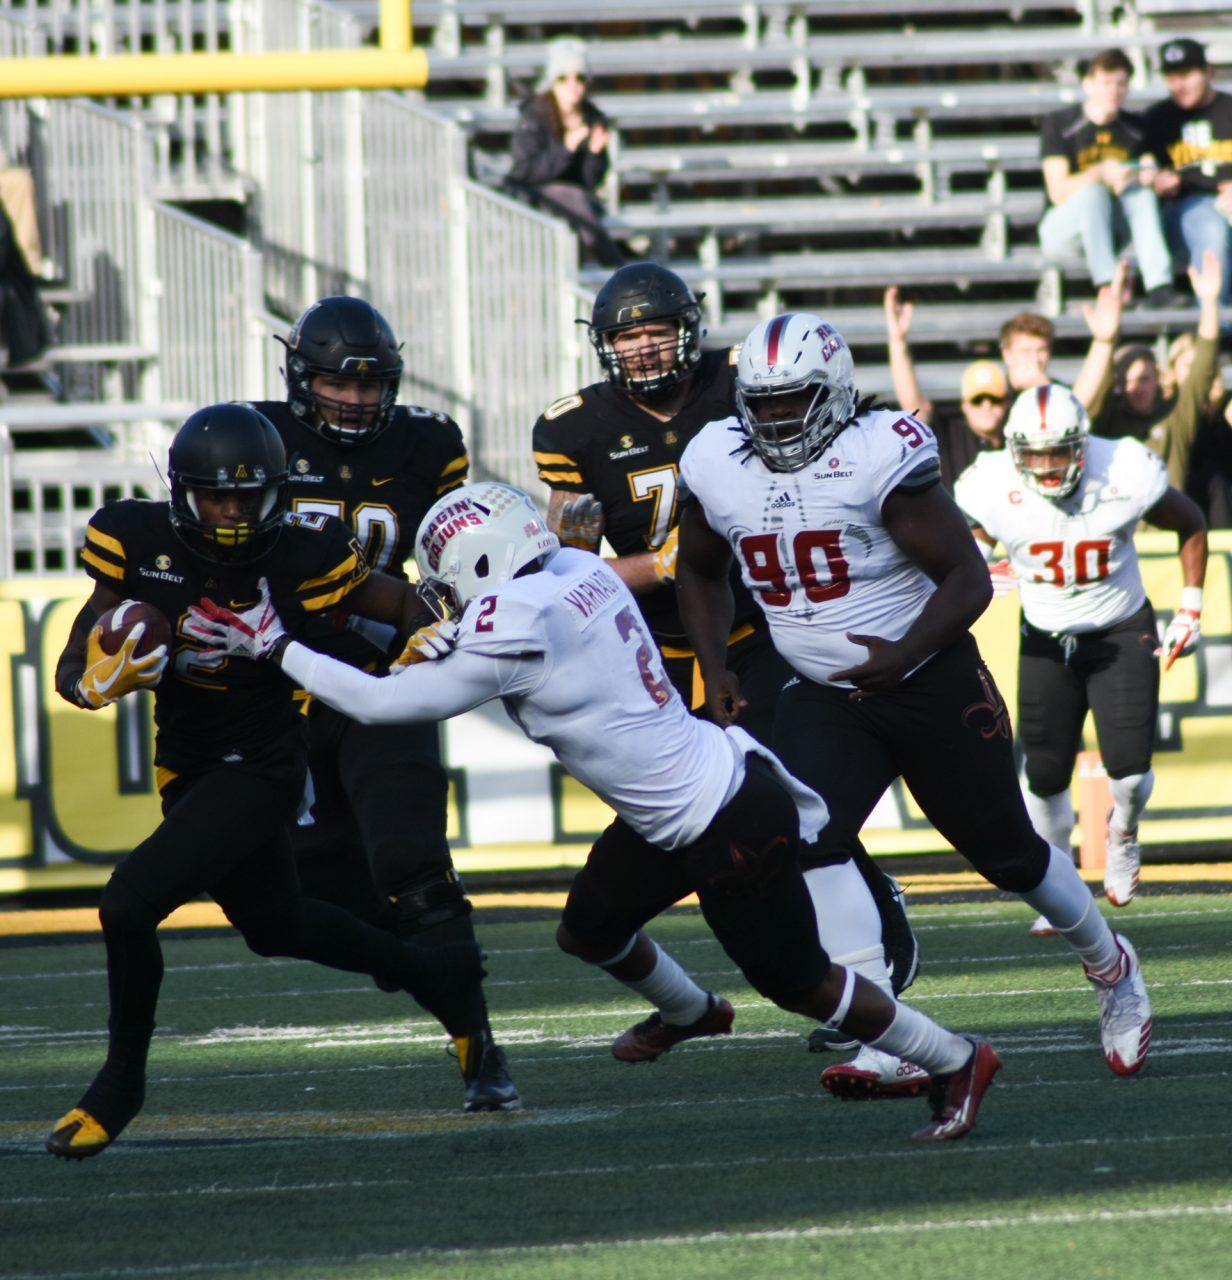 App State Wide Receiver Ike Lewis avoiding a Louisiana tackler. The Mountaineers defeat Louisiana 63-14 at Kidd Brewer Stadium.